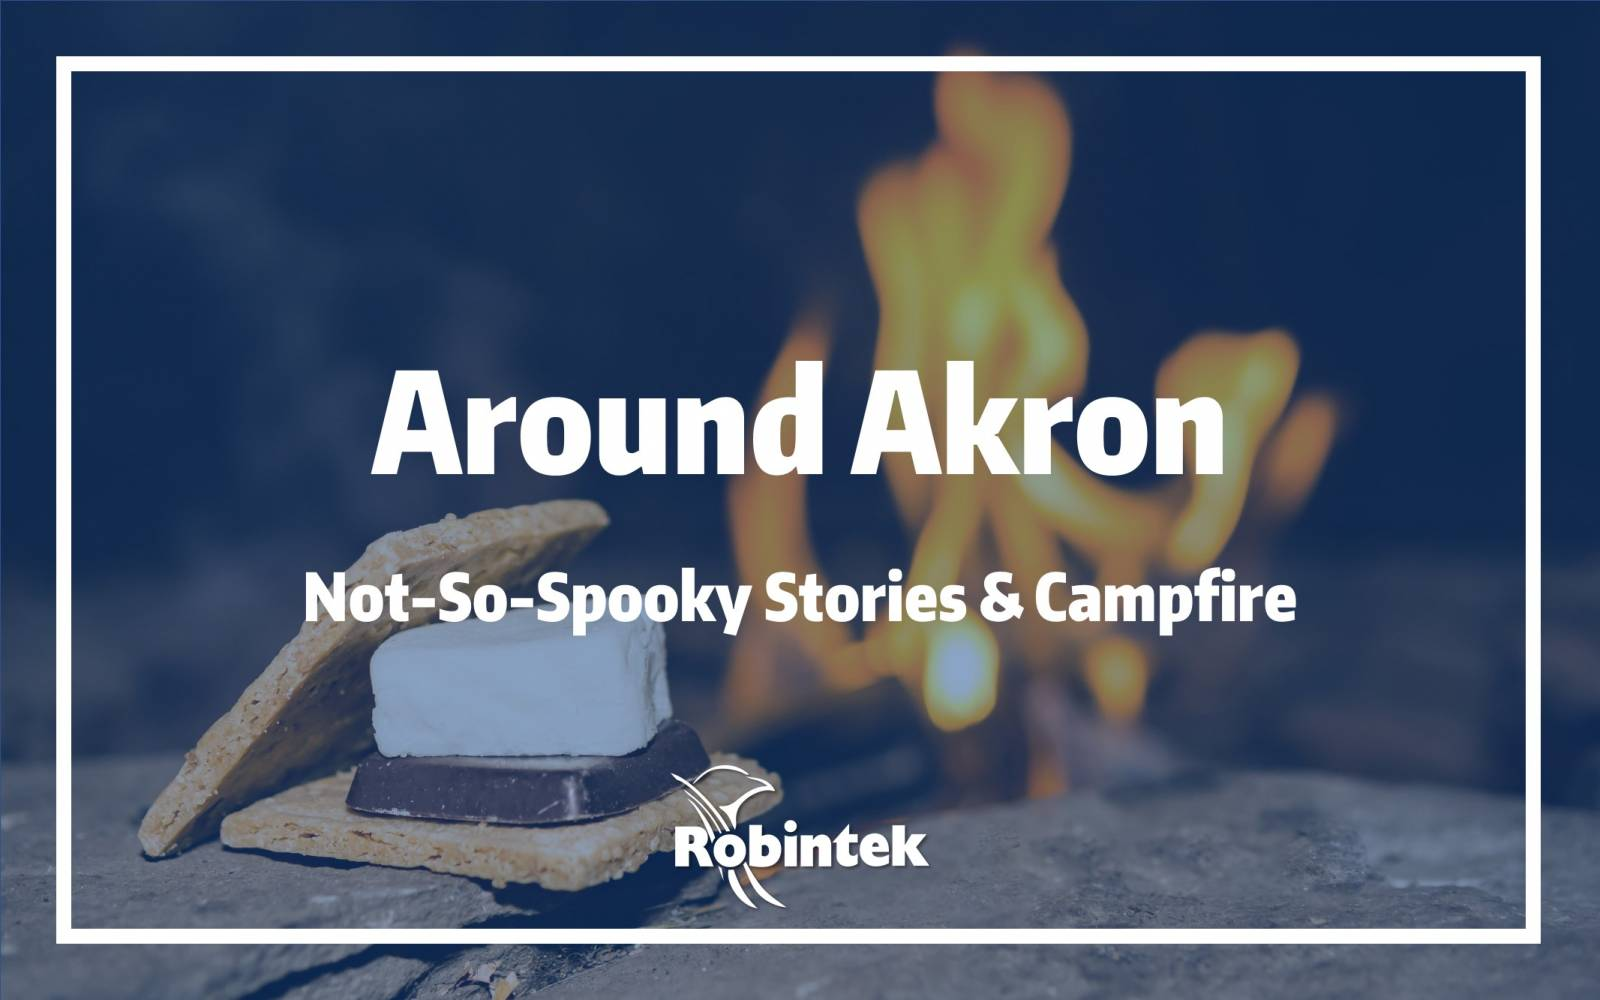 local events akron ohio Local Event: Not-So-Spooky Stories & Campfire